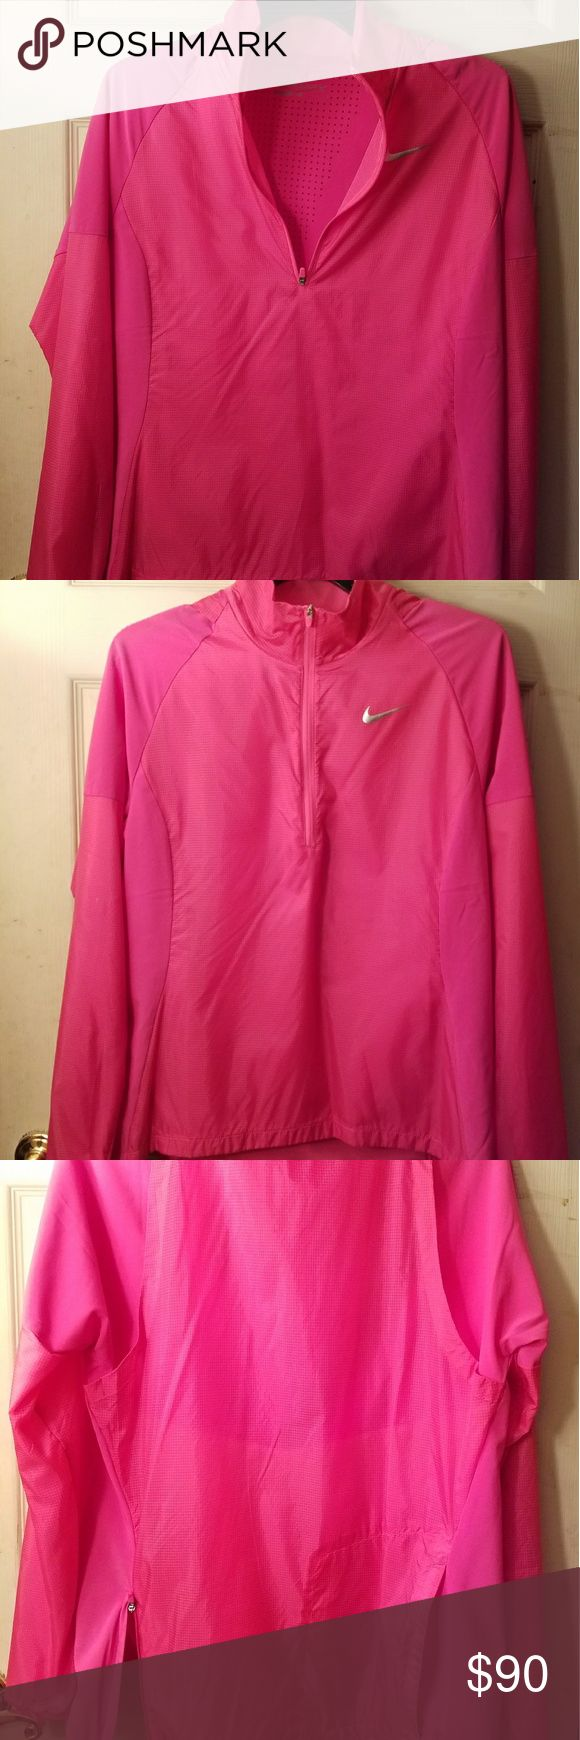 Nike golf women's half zip jacket Packable Nike adaptable wind half zip pink jacket. Made with lightweight nylon fabric and stretch panels to help keep out the elements and let you move freely. Mock neck zips up to chin. Stretch cuffs. Fabric 100% nylon - panels 86% polyester/ 14% spandex - lining 100% polyester. This is a great jacket which I bought and never wore. Nike Jackets & Coats Utility Jackets